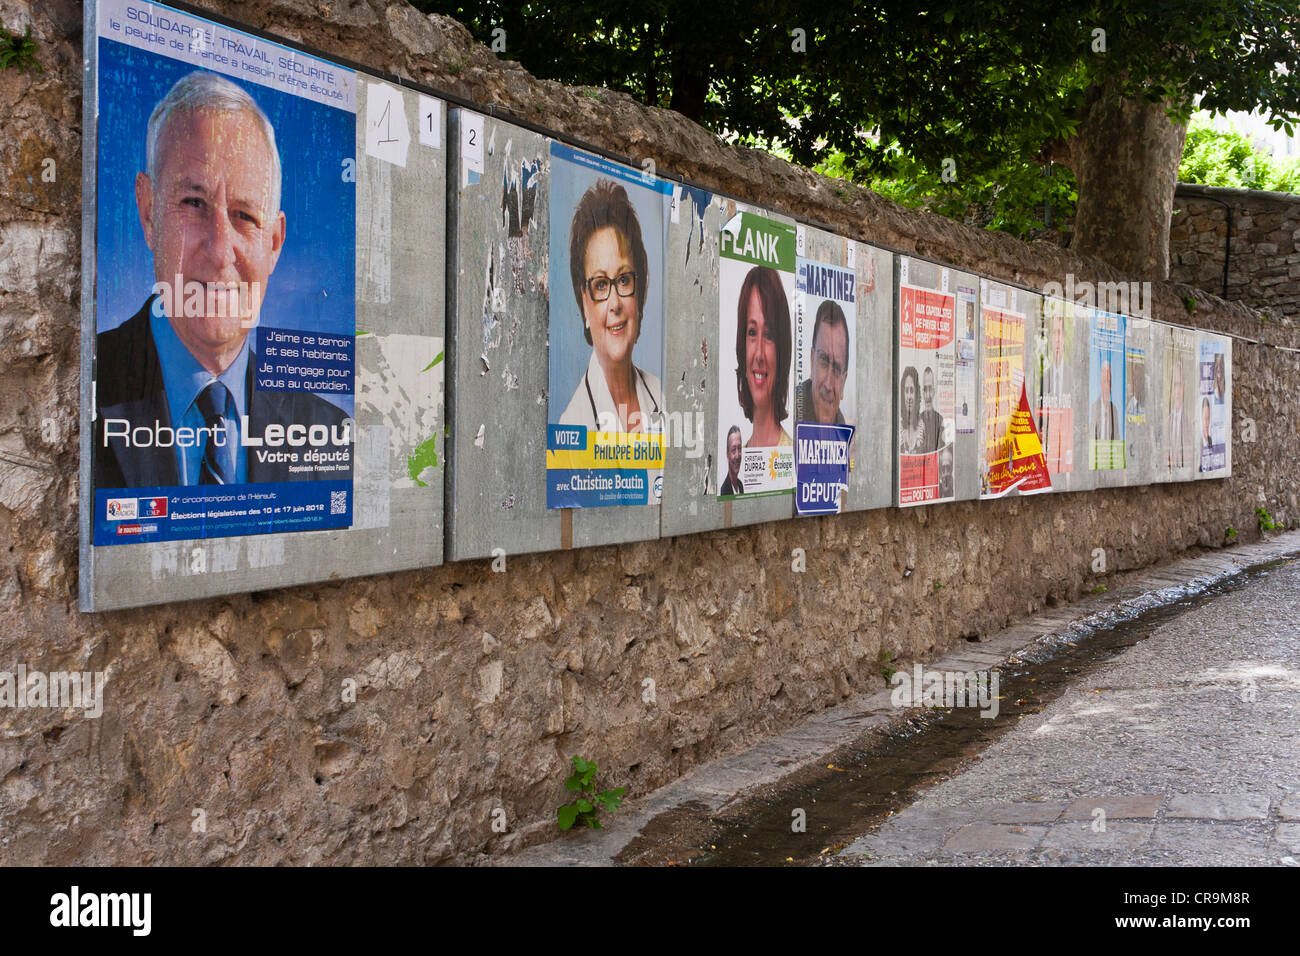 A wall of posters of candidates for the French parliamentary elections 2012 in the village of Saint-Guilhem-le-Désert, - Stock Image